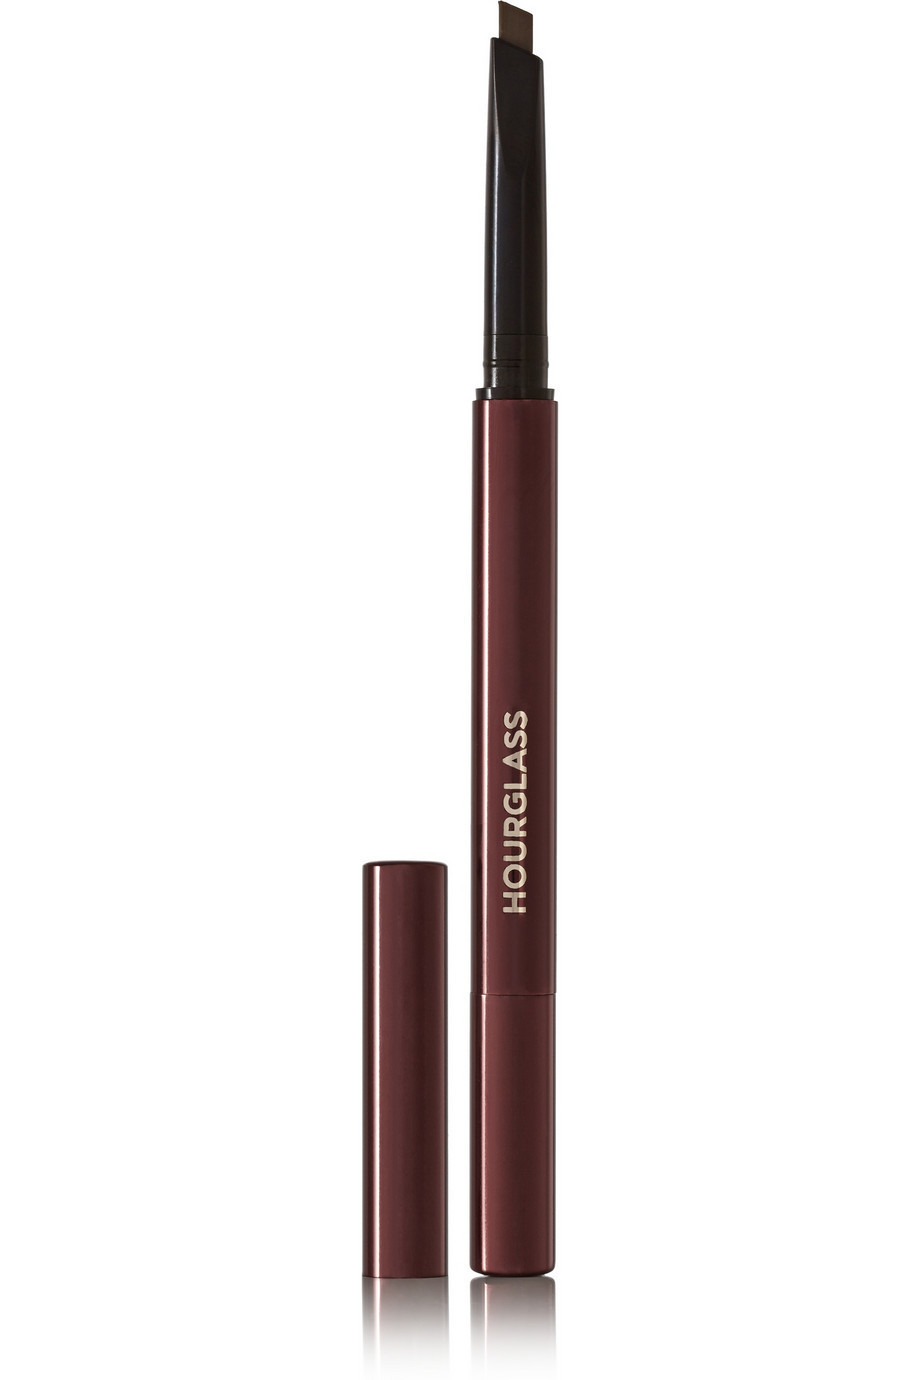 HOURGLASS Arch Brow Sculpting Pencil  アイブロウペンシル 3色